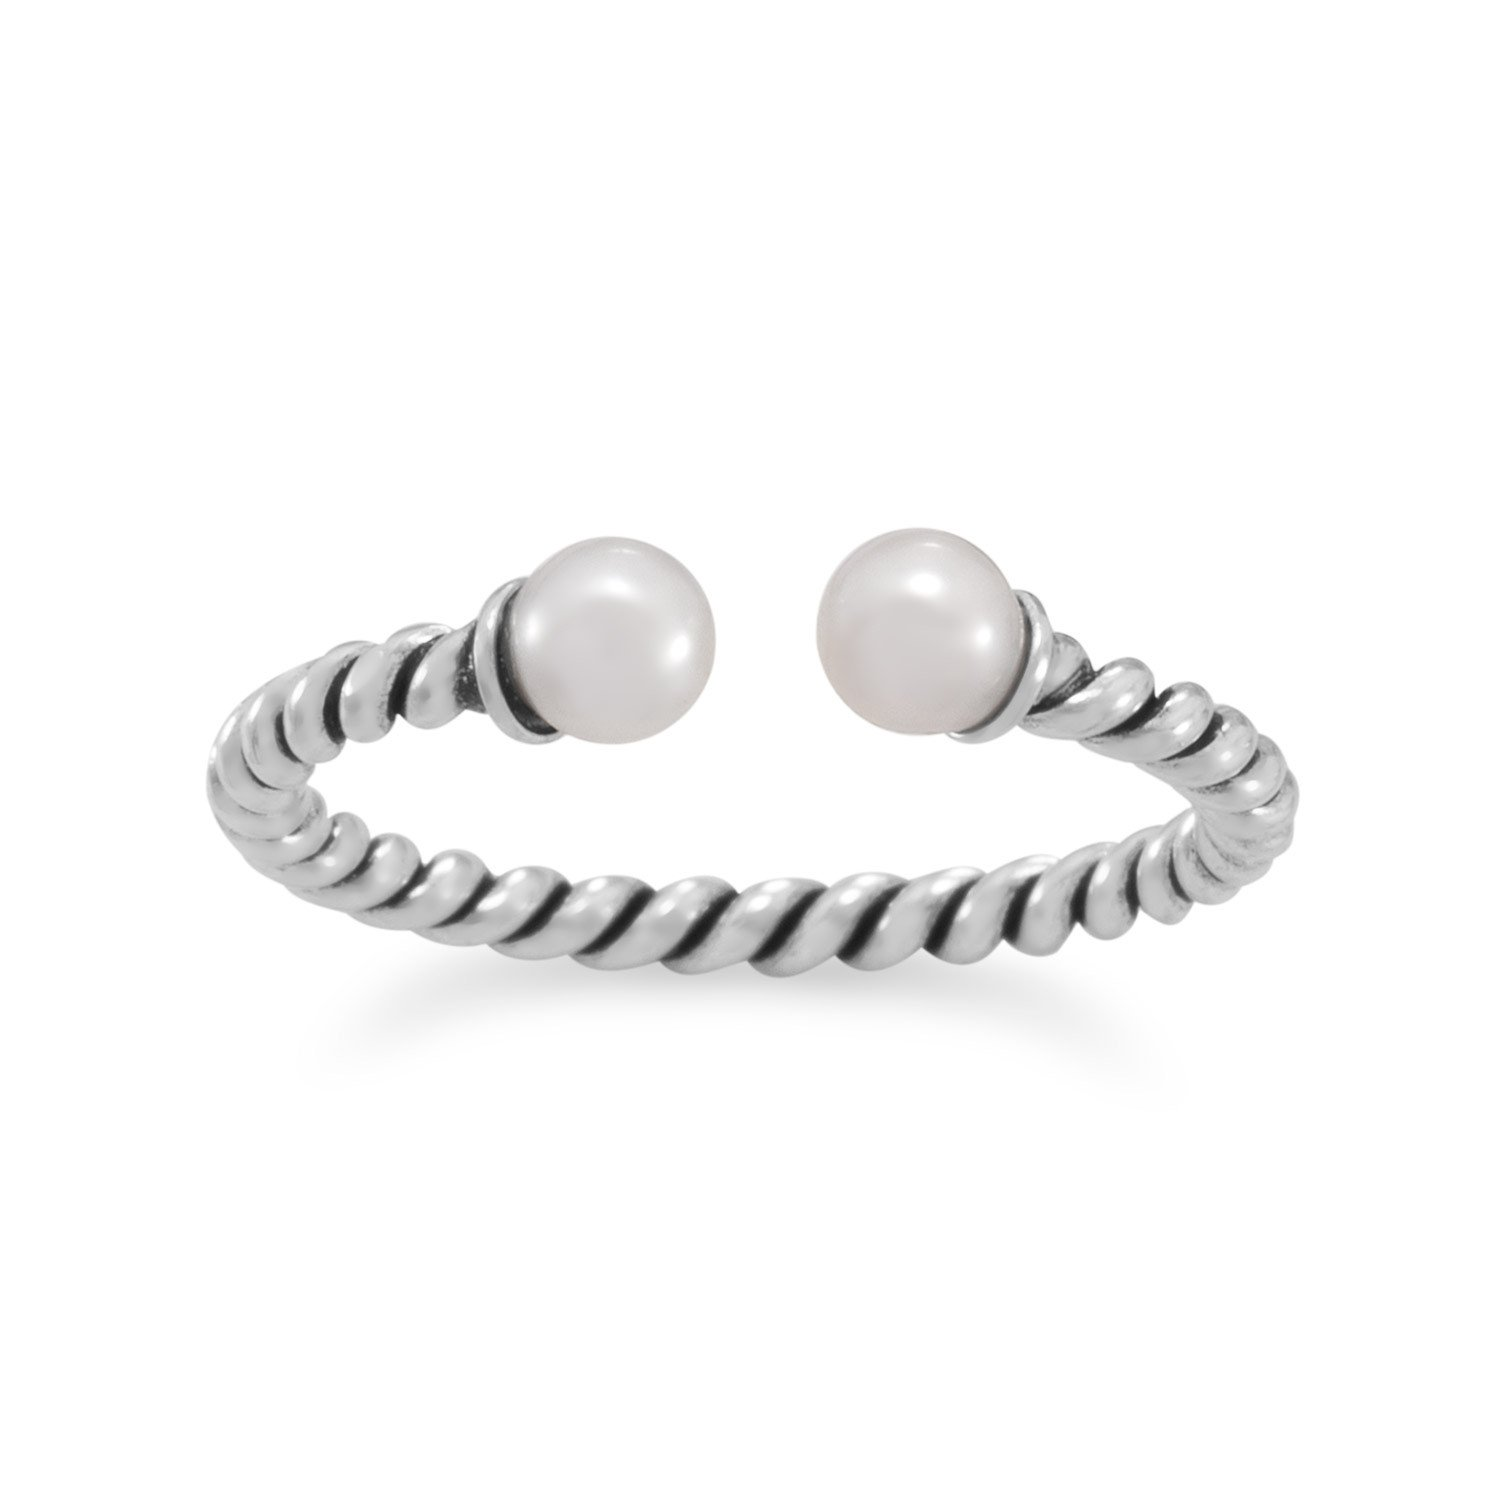 Oxidized Twist Band with Cultured Freshwater Pearl